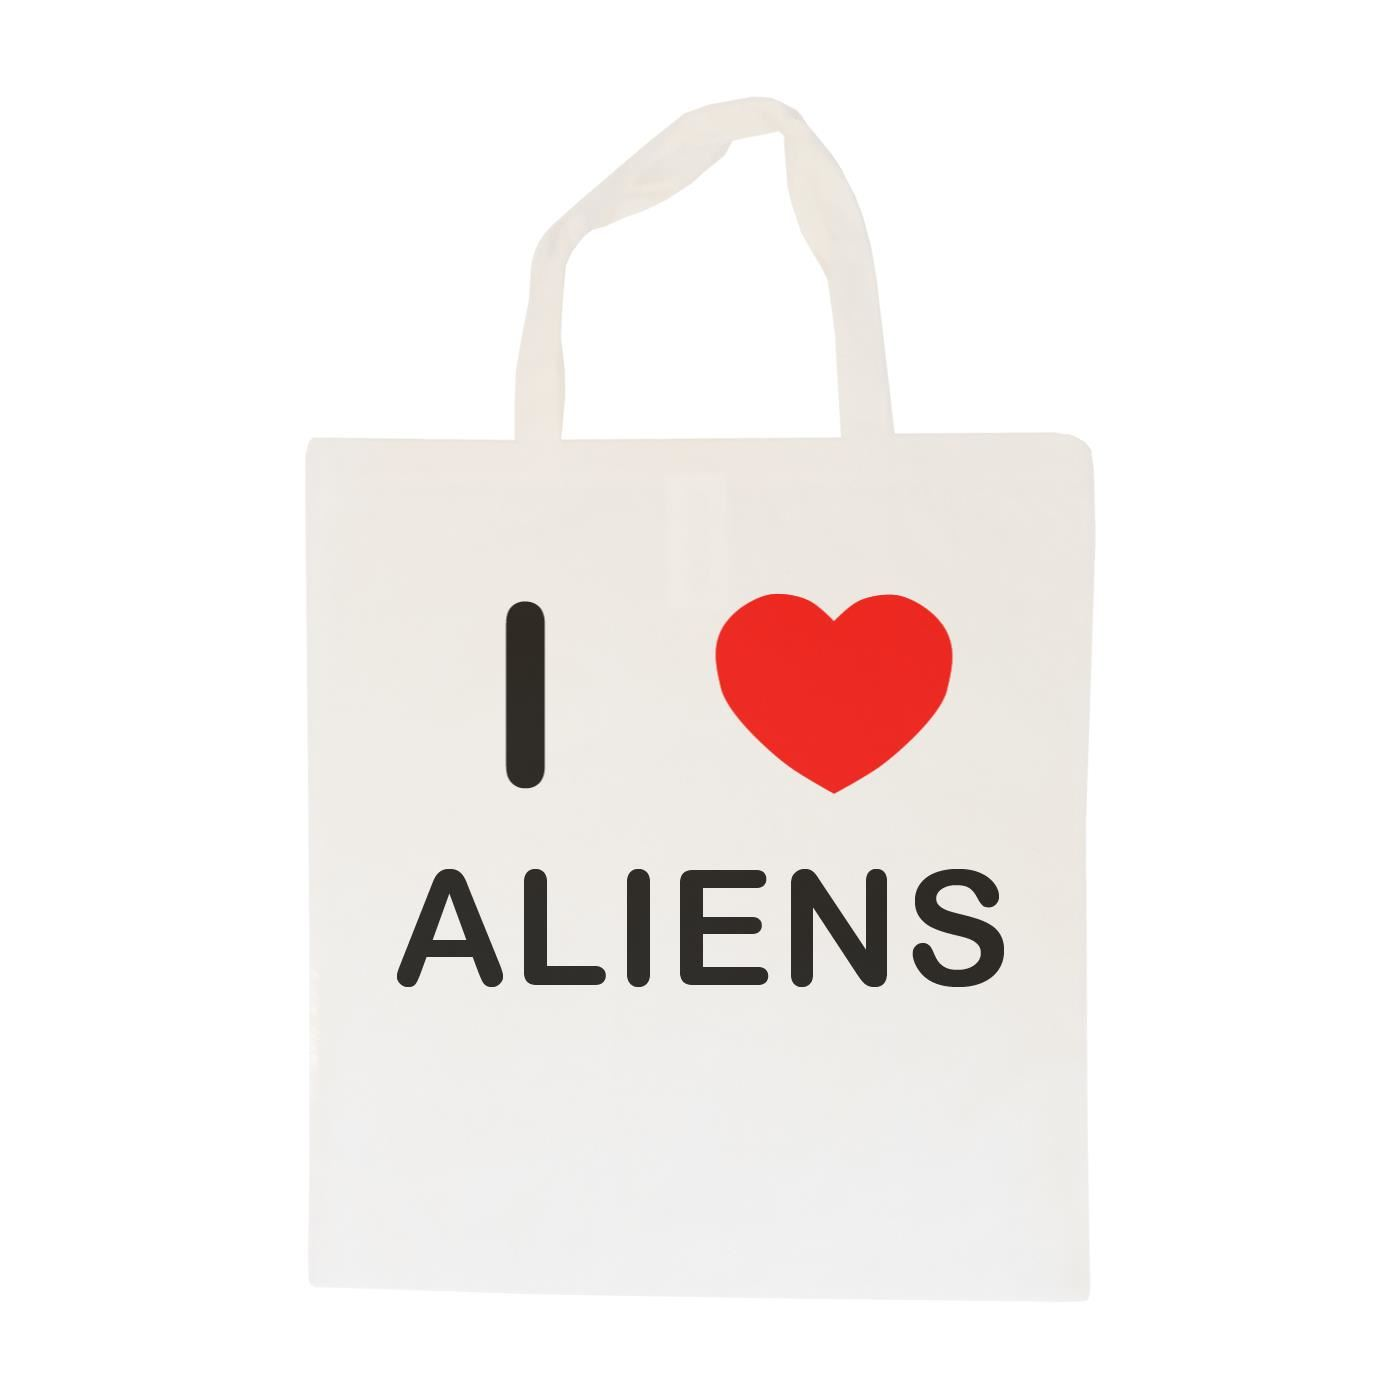 I Love Aliens - Cotton Bag | Size choice Tote, Shopper or Sling